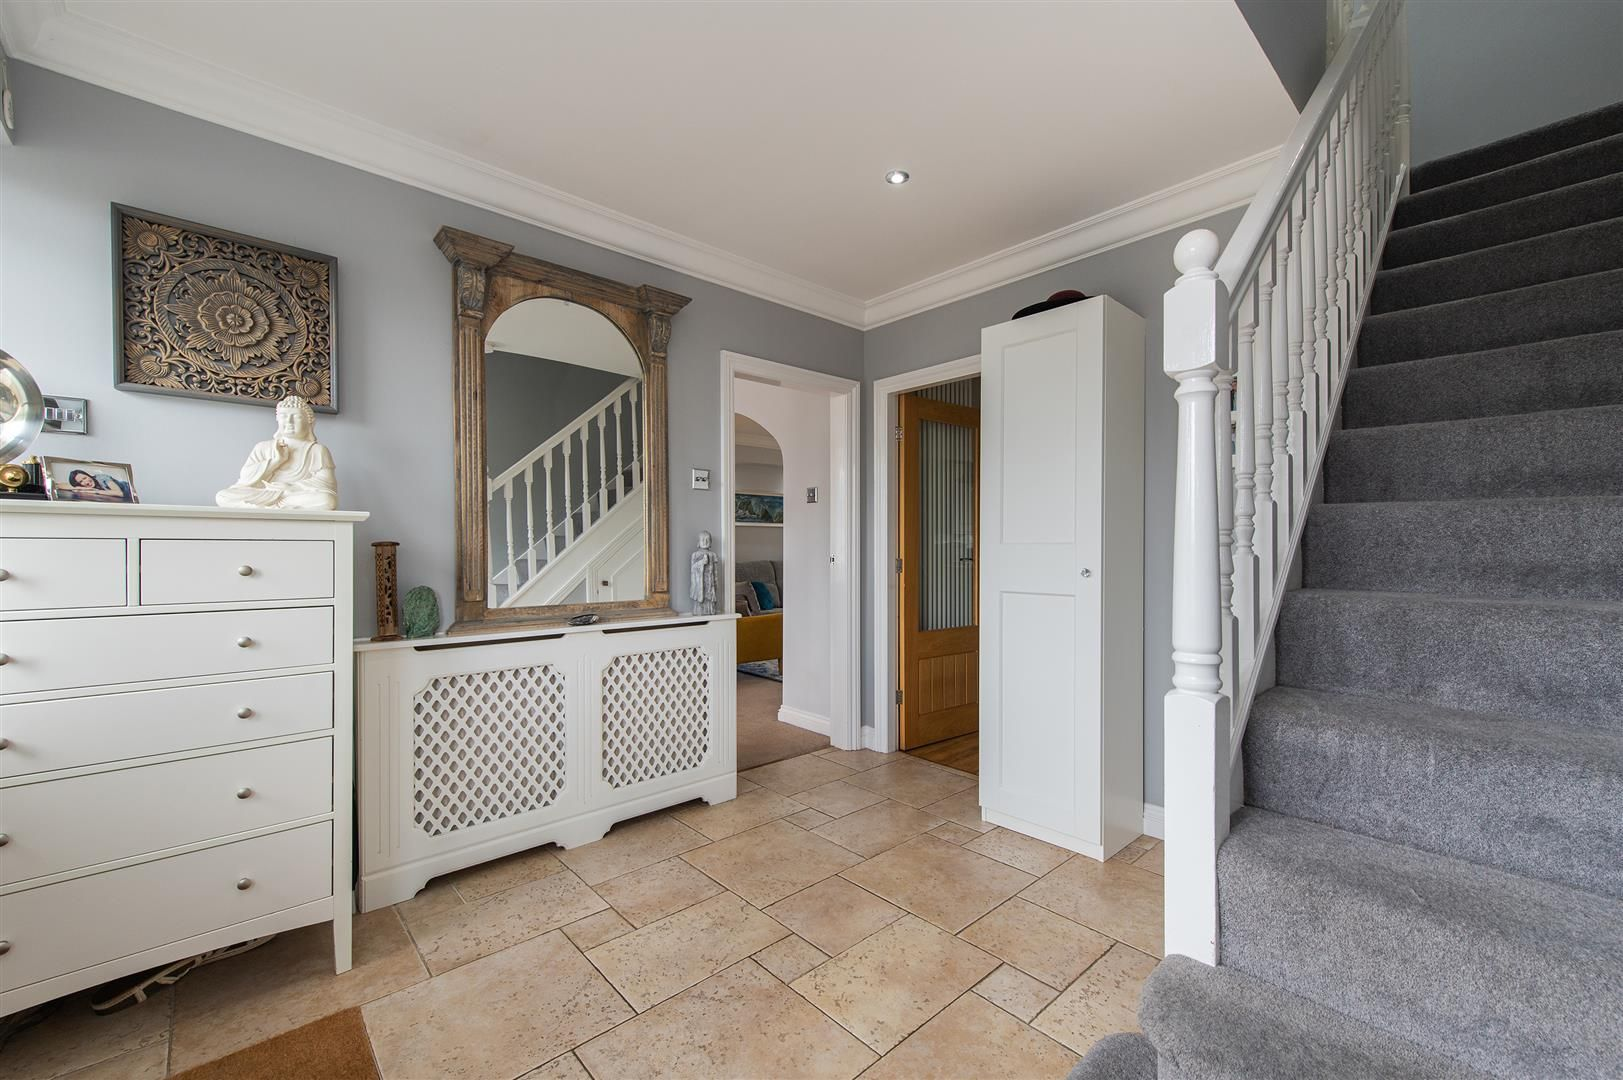 5 bed detached for sale in Hagley 2